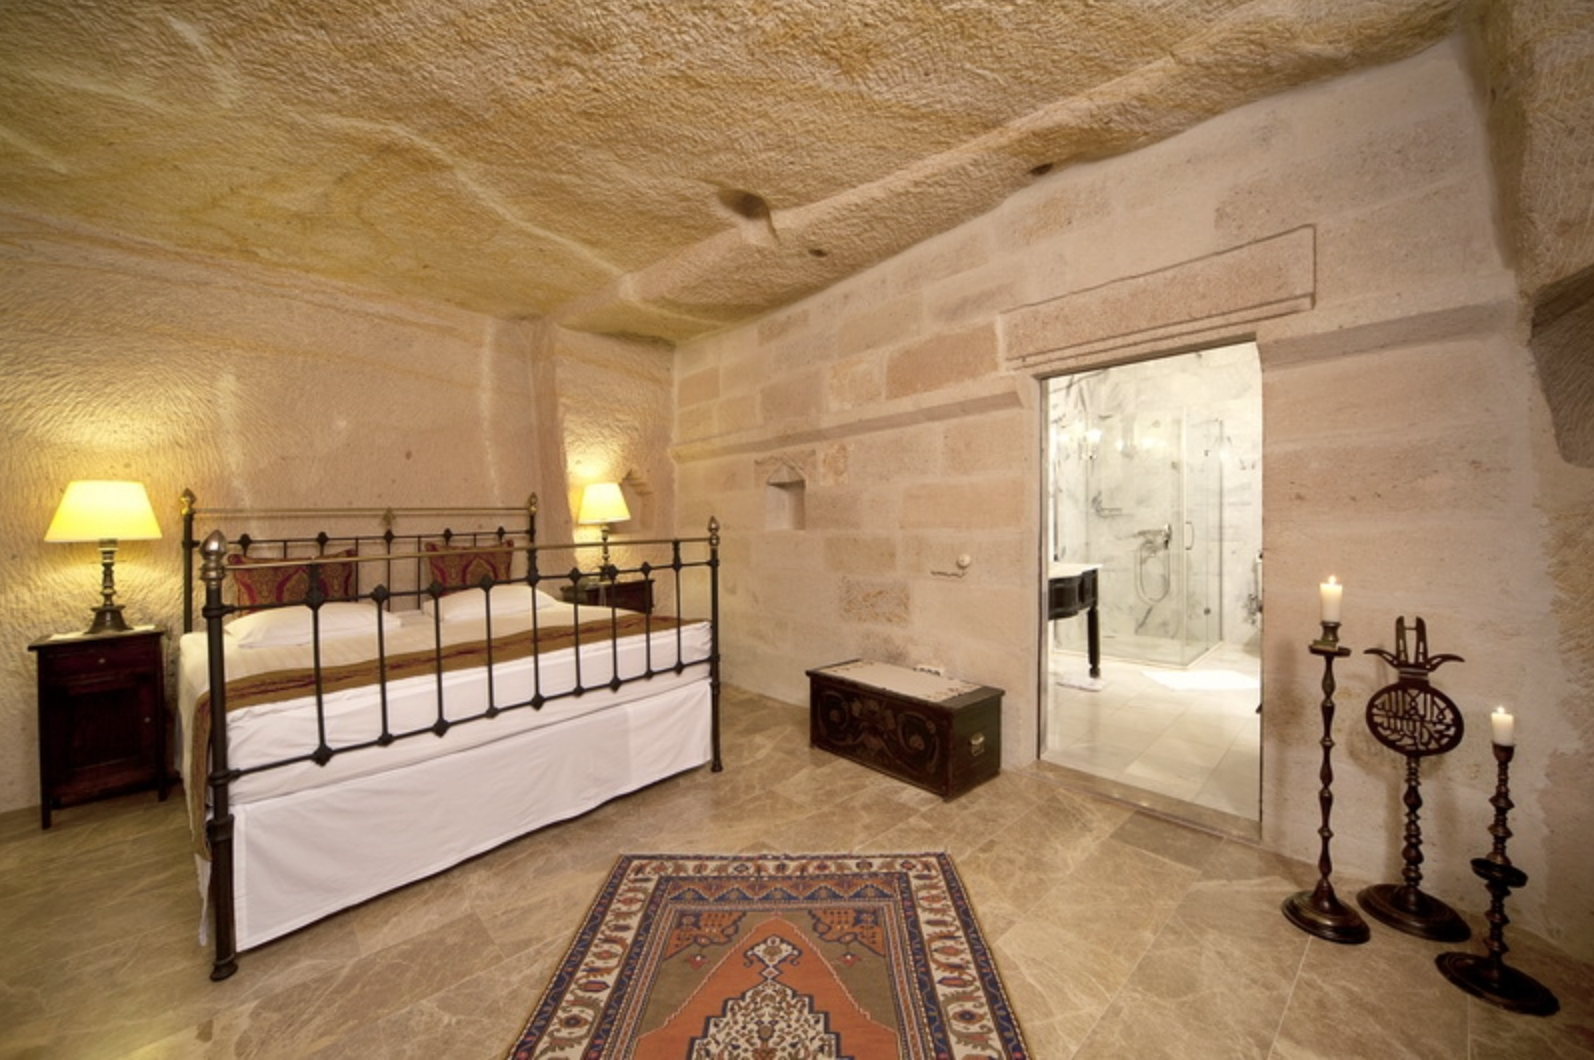 Hotel suites feature  marble floors, hand-laced curtains, antique chests handcrafted writing desks and old kilim carpets.